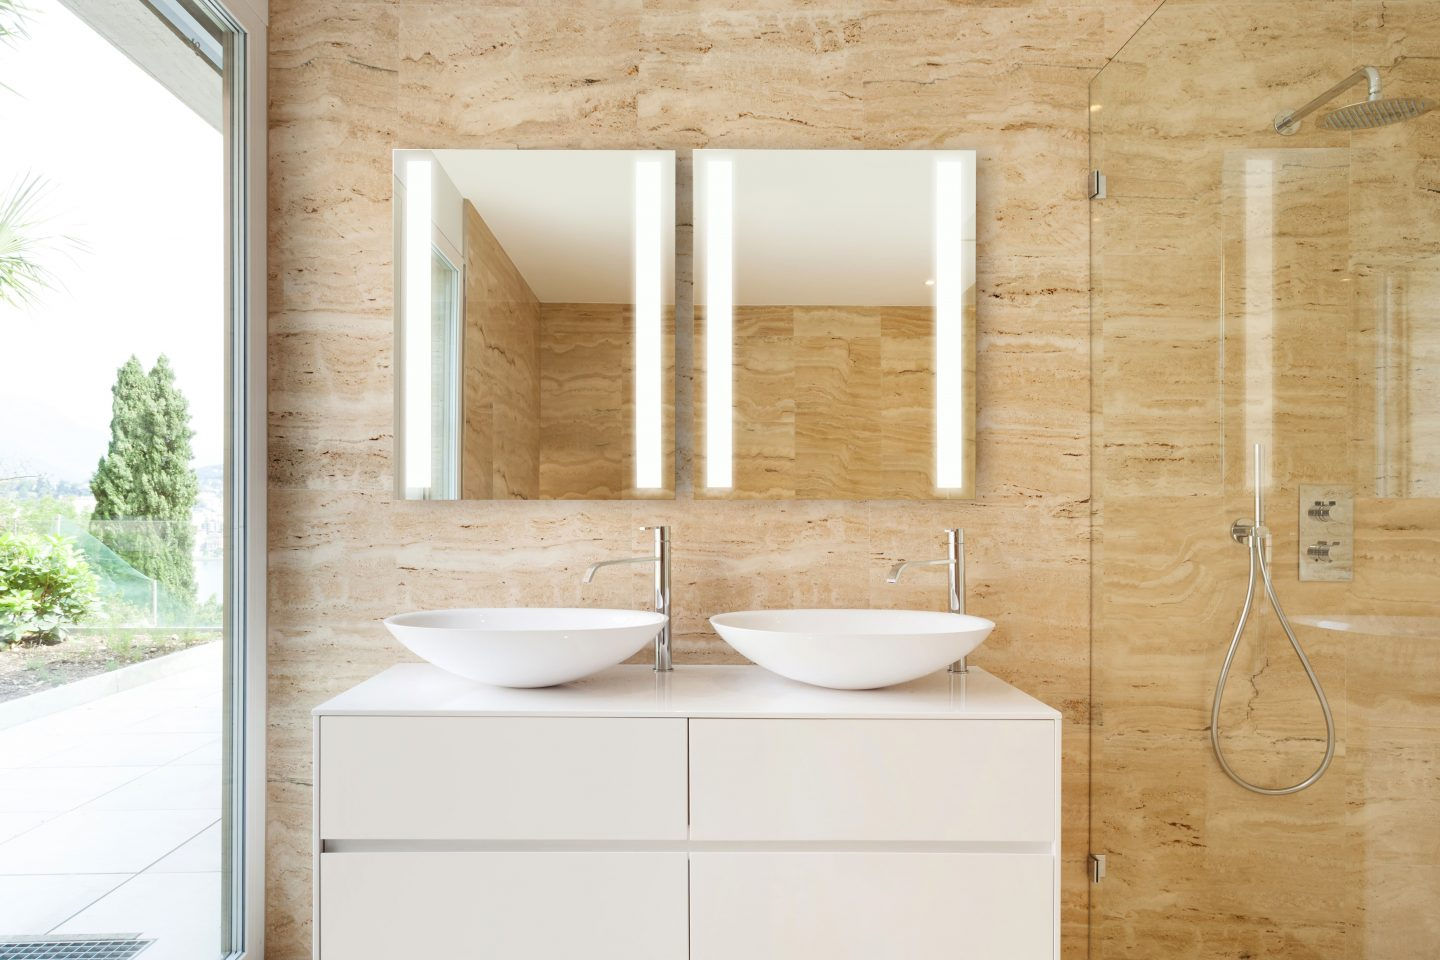 Medicine Cabinet With Built In Side Lights sidler - sidelight mirrored bathroom medicine cabinet